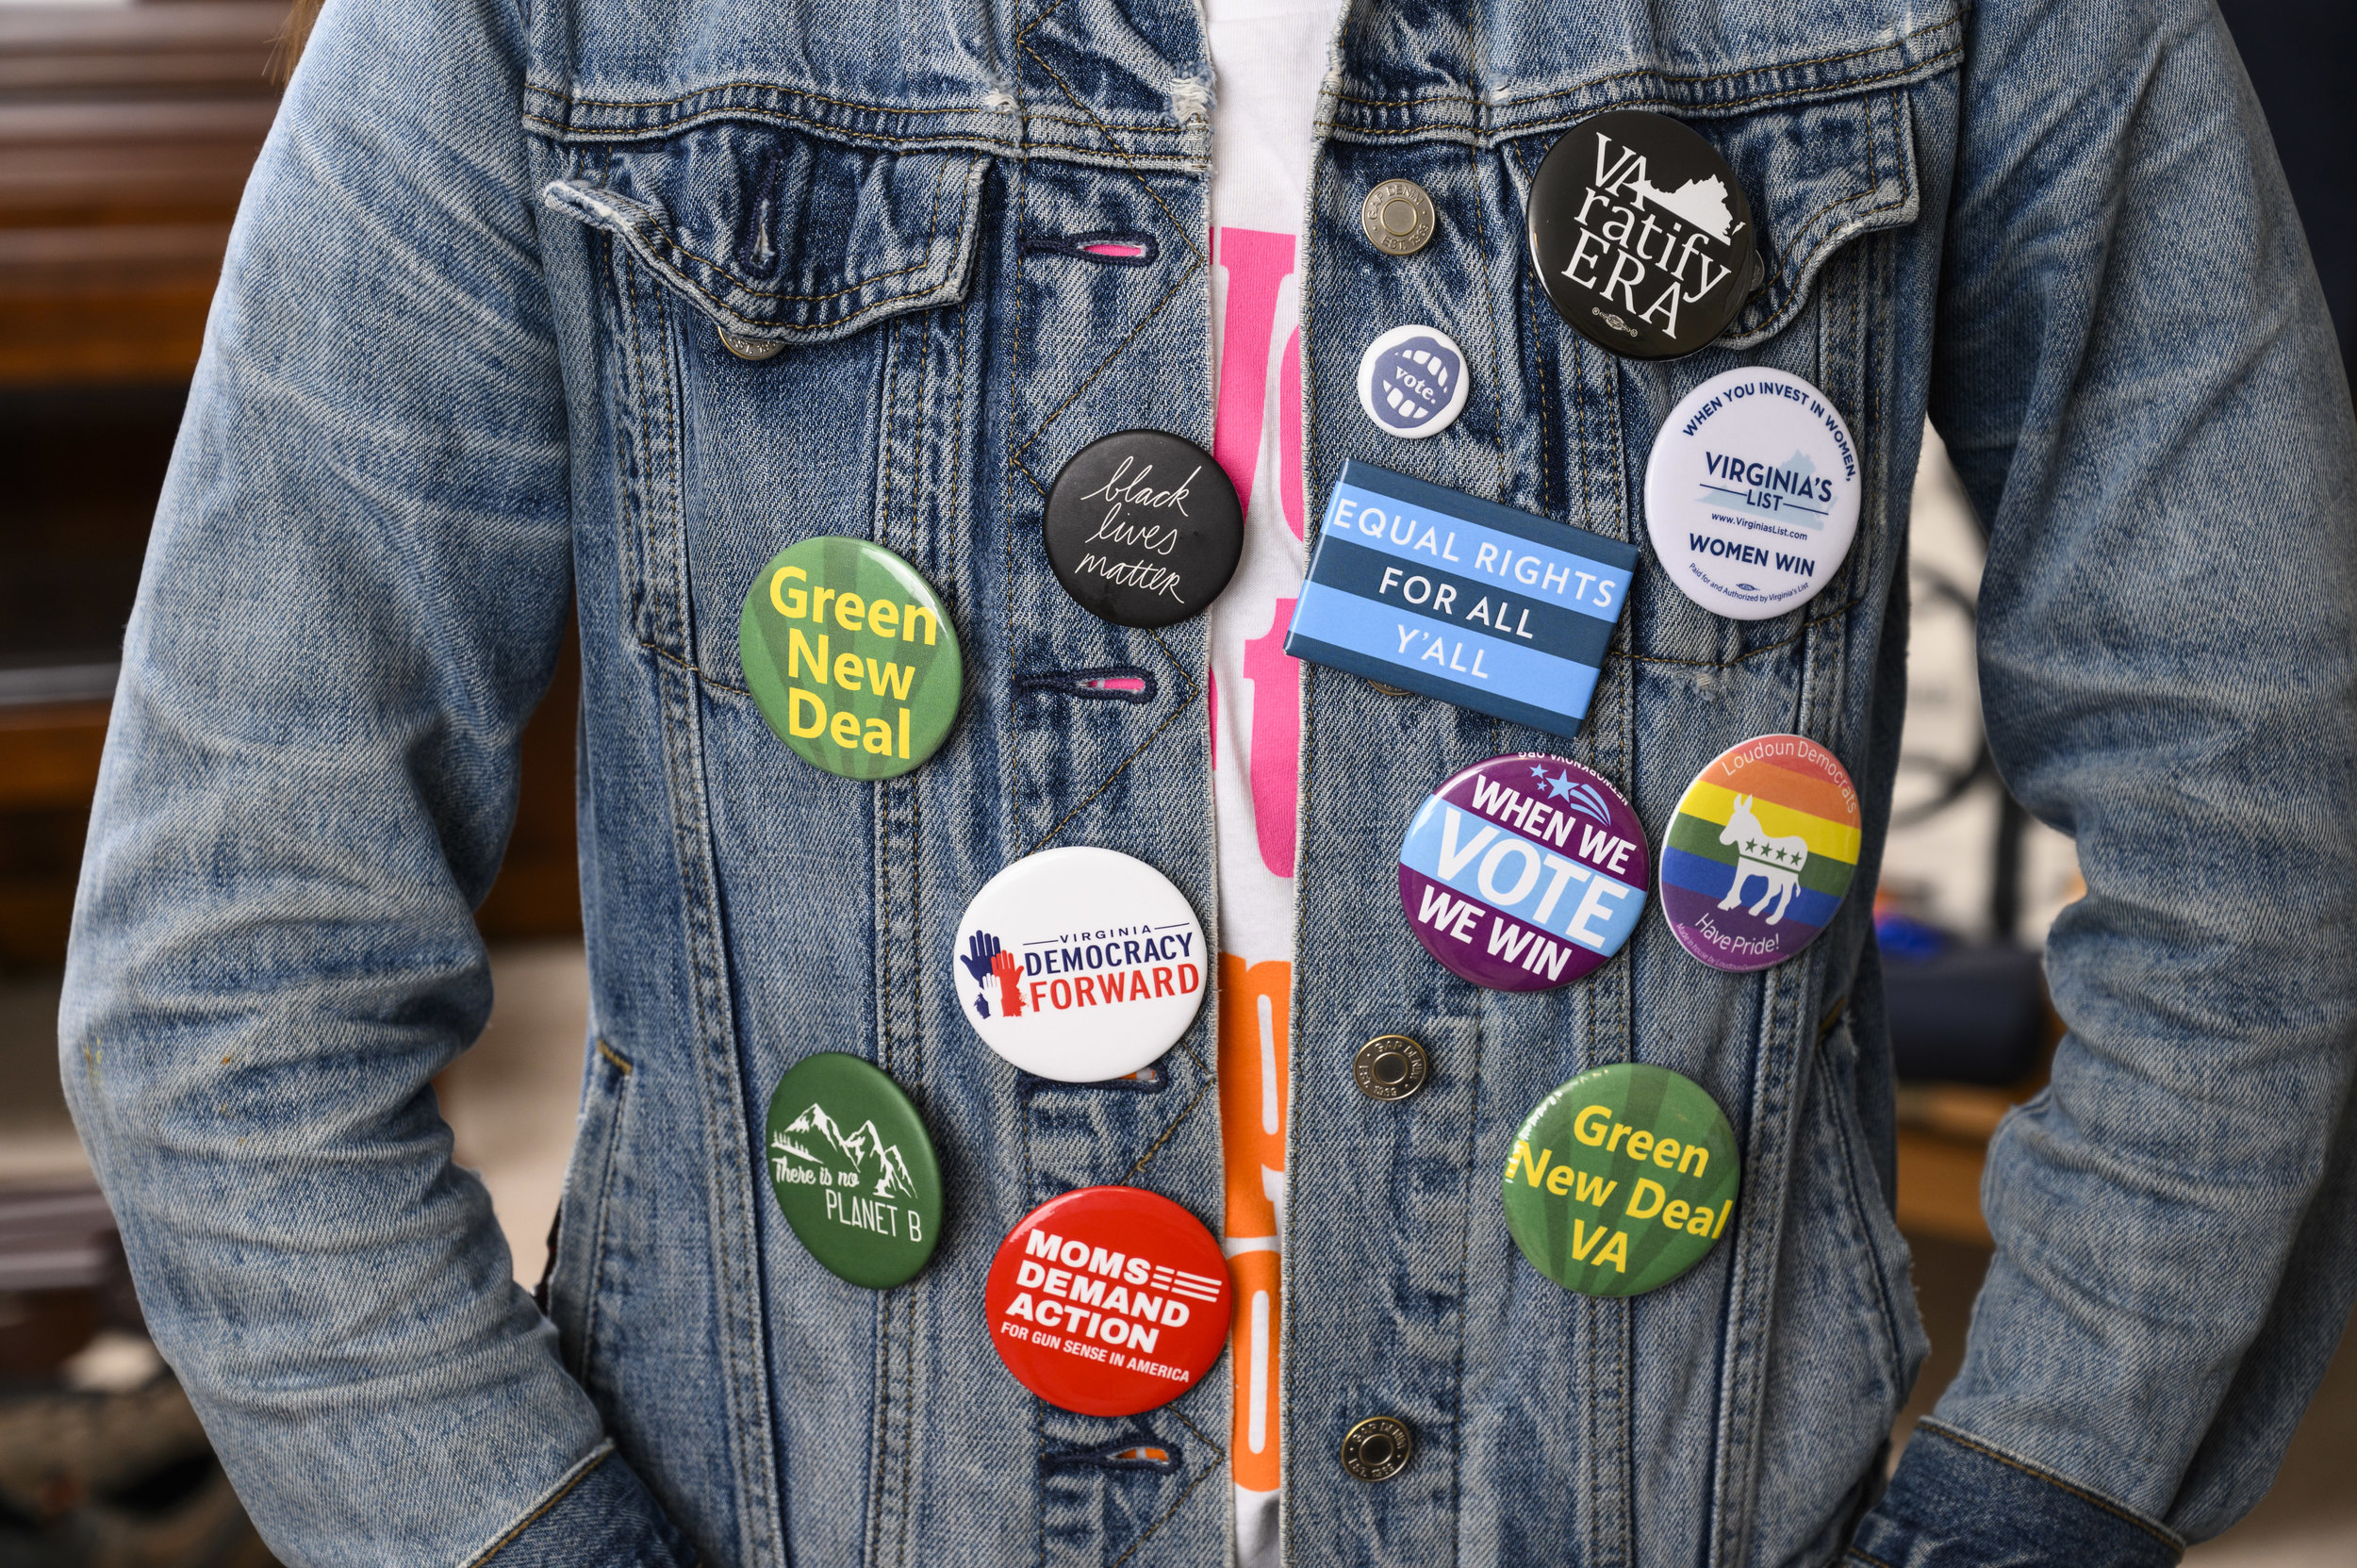 You've pinned the issues on me and my jean jacket. - We're fighting for a Virginia that includes everyone. That means considering the issues that affect all of us. Check out the buttons on my jean jacket to learn more about what I stand for!